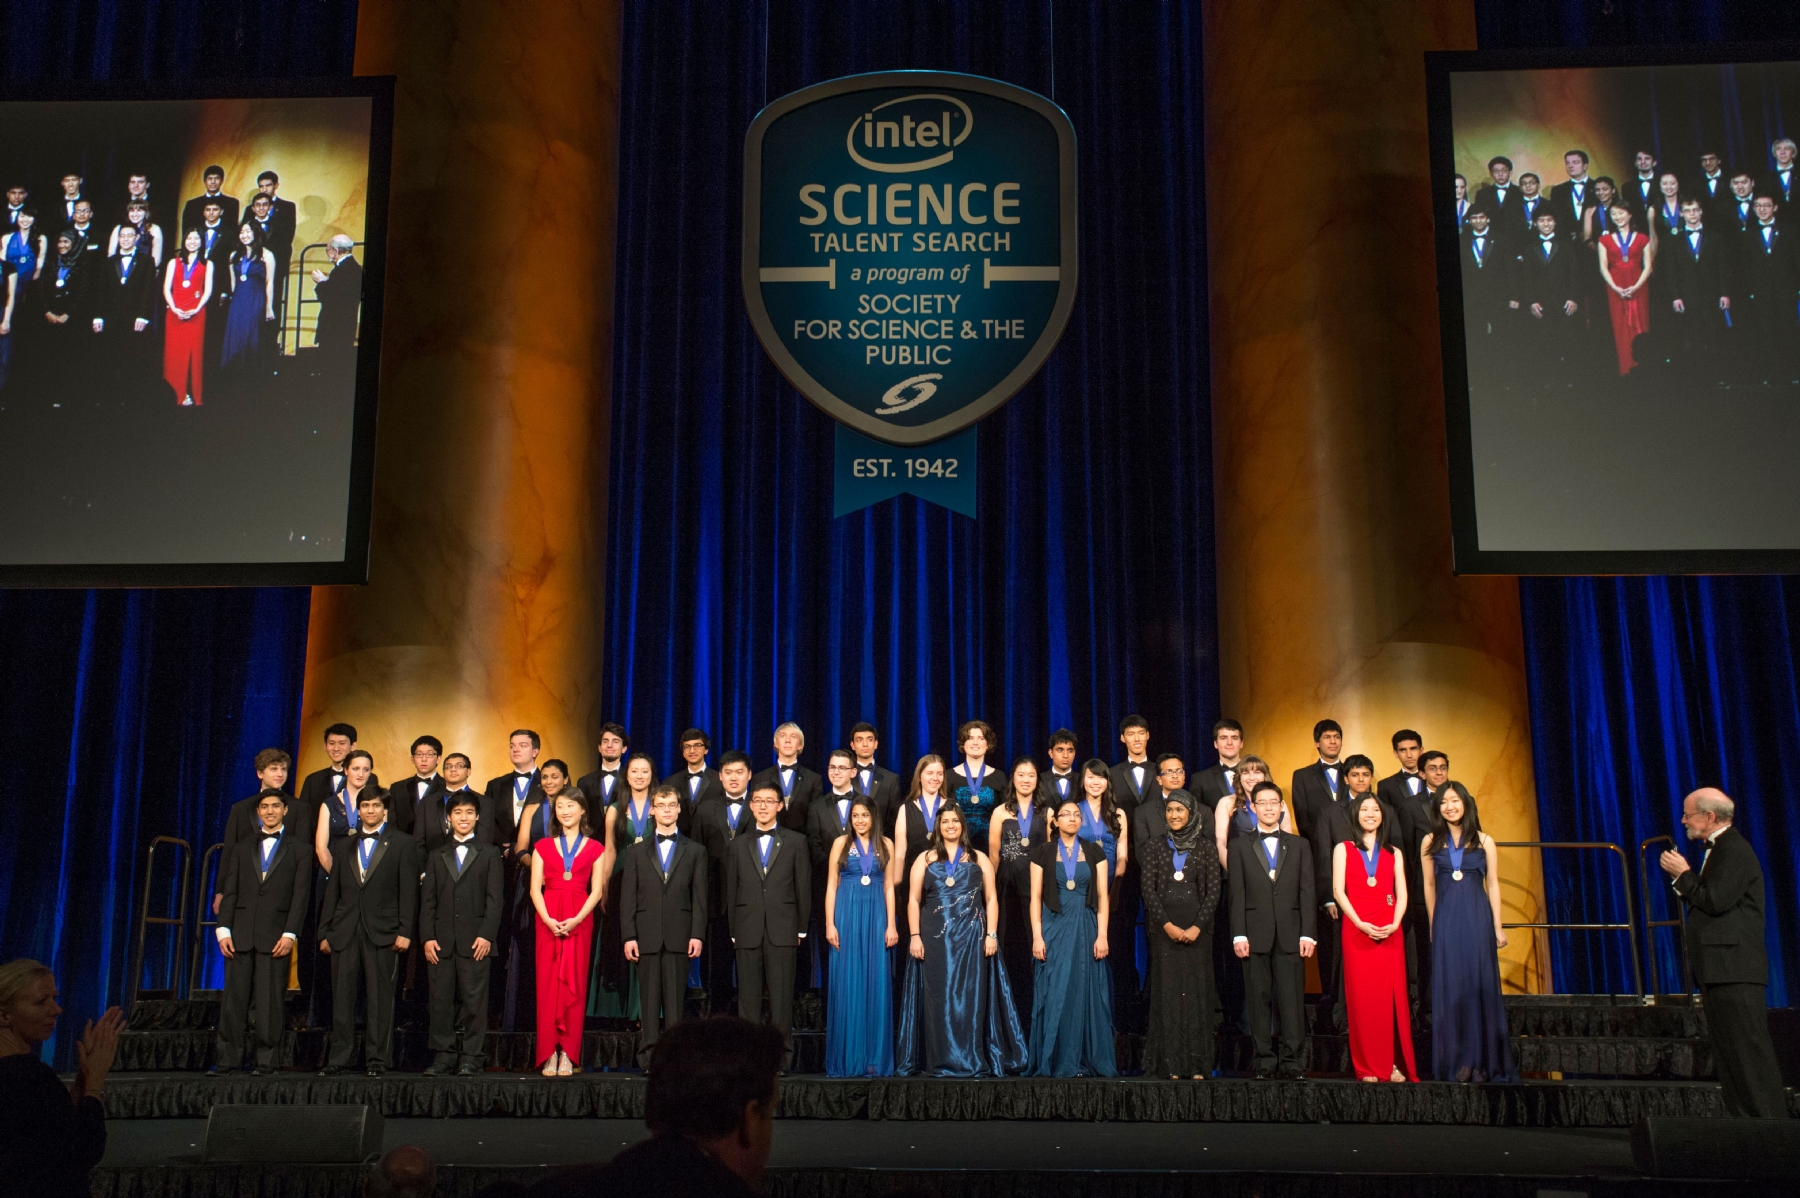 14 Indian-Americans to shine at the Intel Science Talent Search Final at Washington